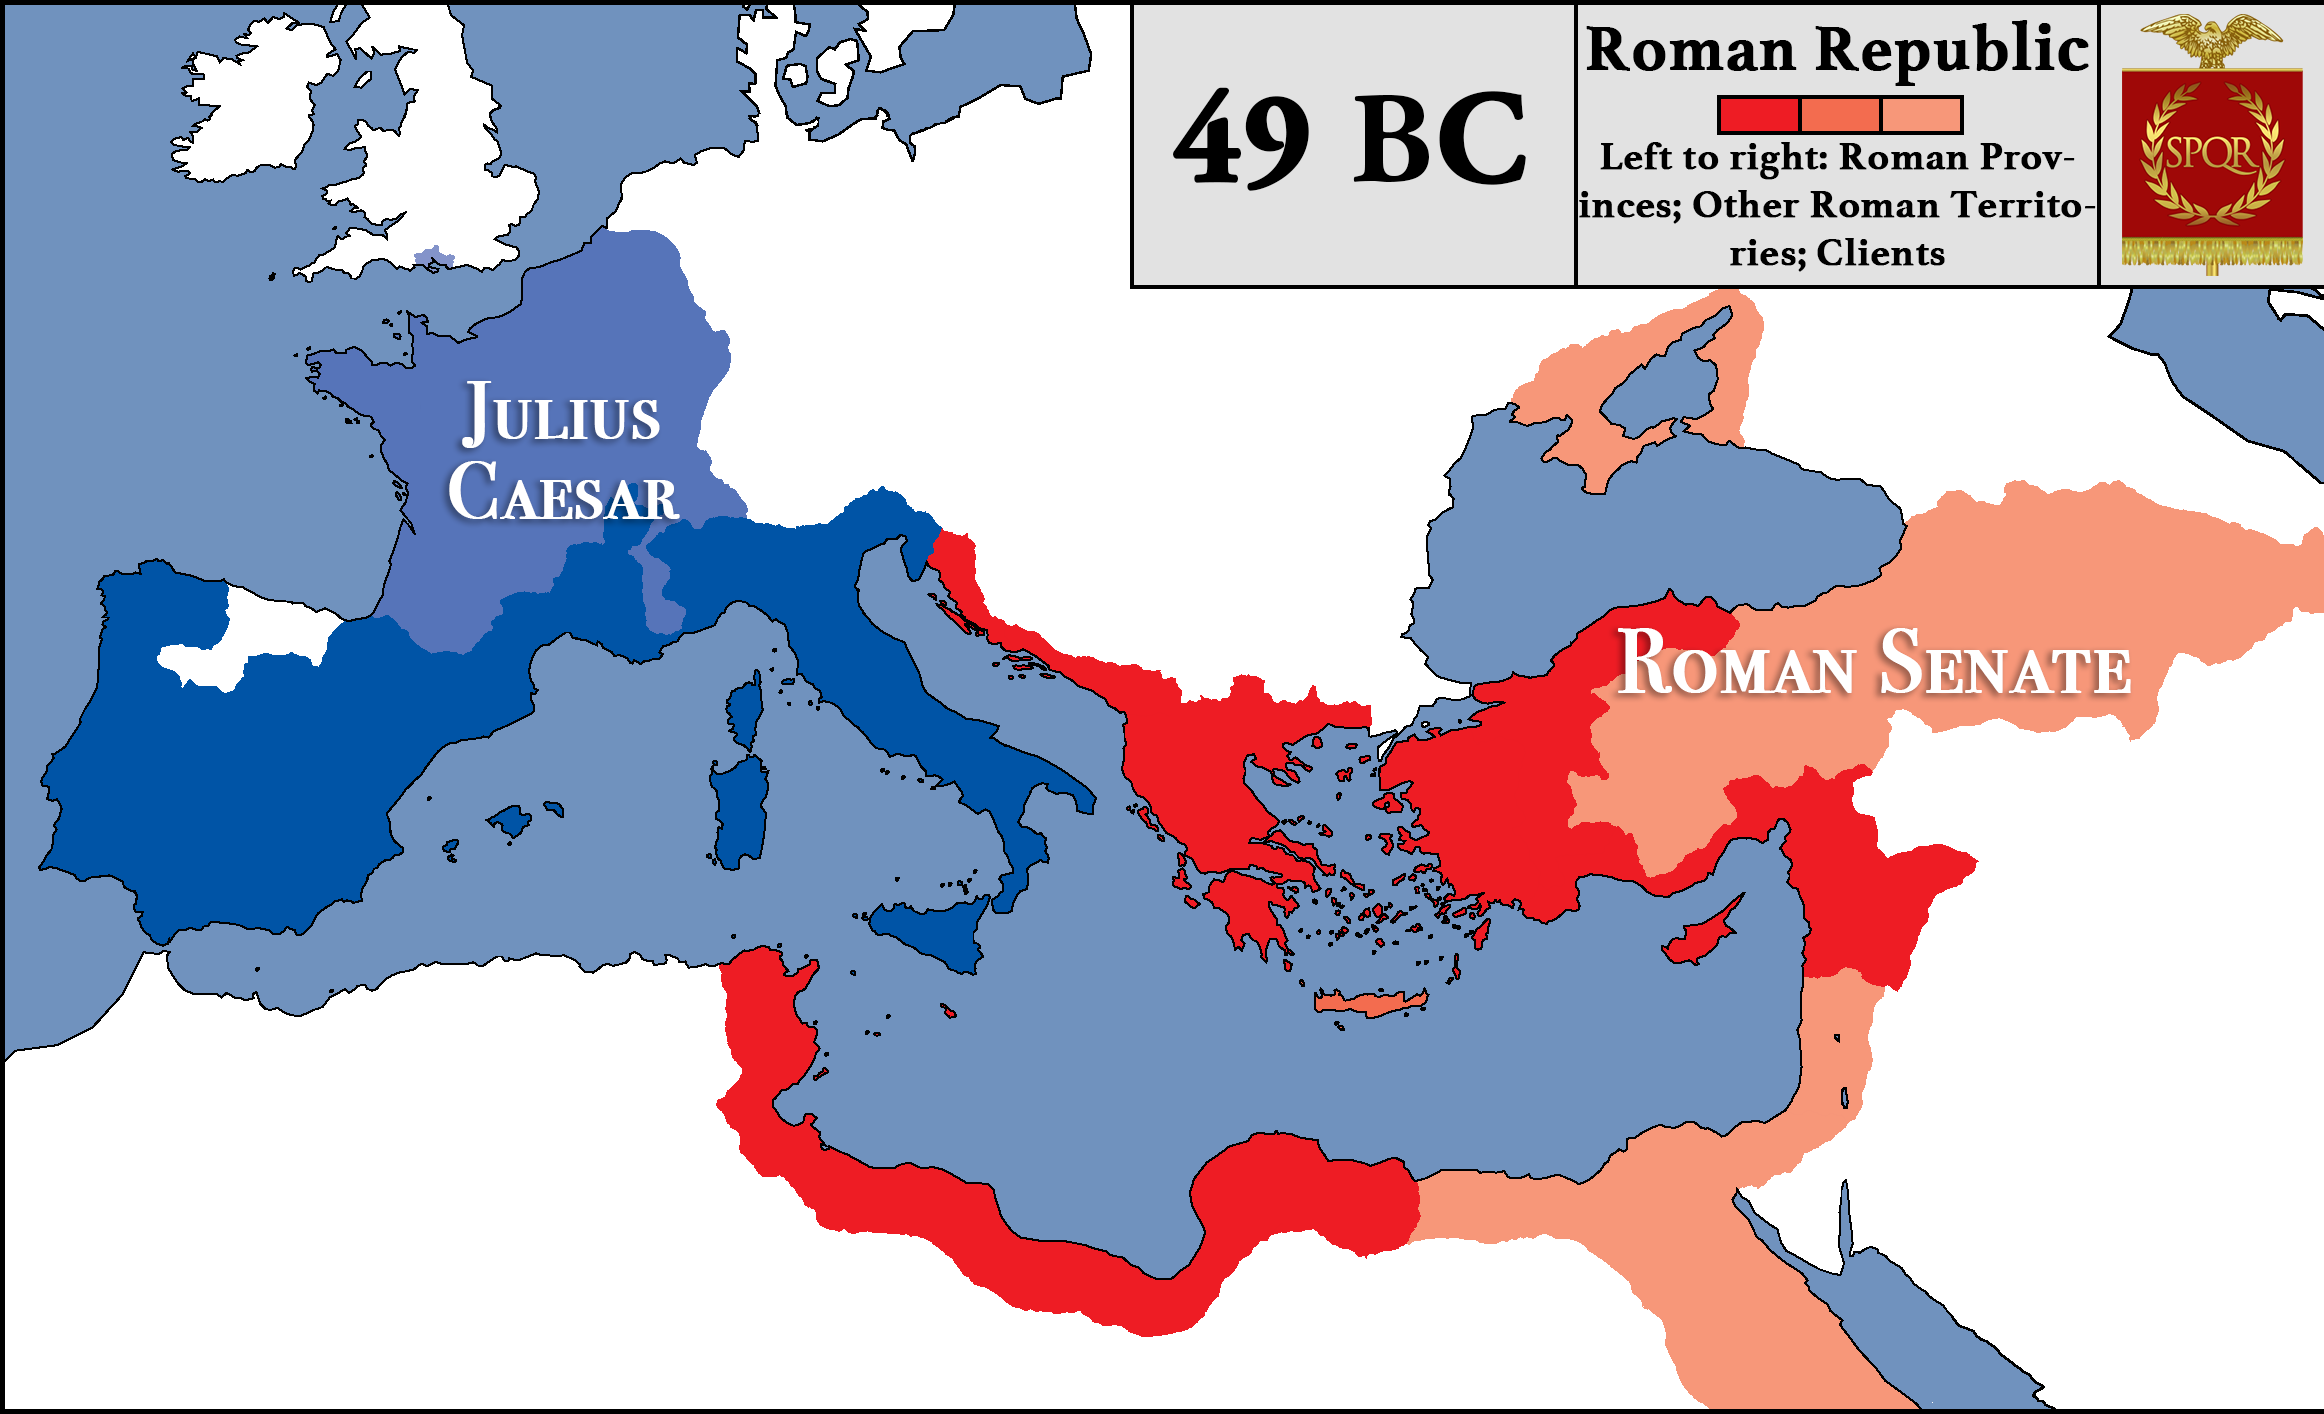 roman republic and literary elements Describe the events that led to the end of the roman republic and the creation of the roman empire (julius caesar, augustus caesar) civil wars between generalsvic¬tory by julius caesar, in 45 bce & end of traditional institutions of roman republic.